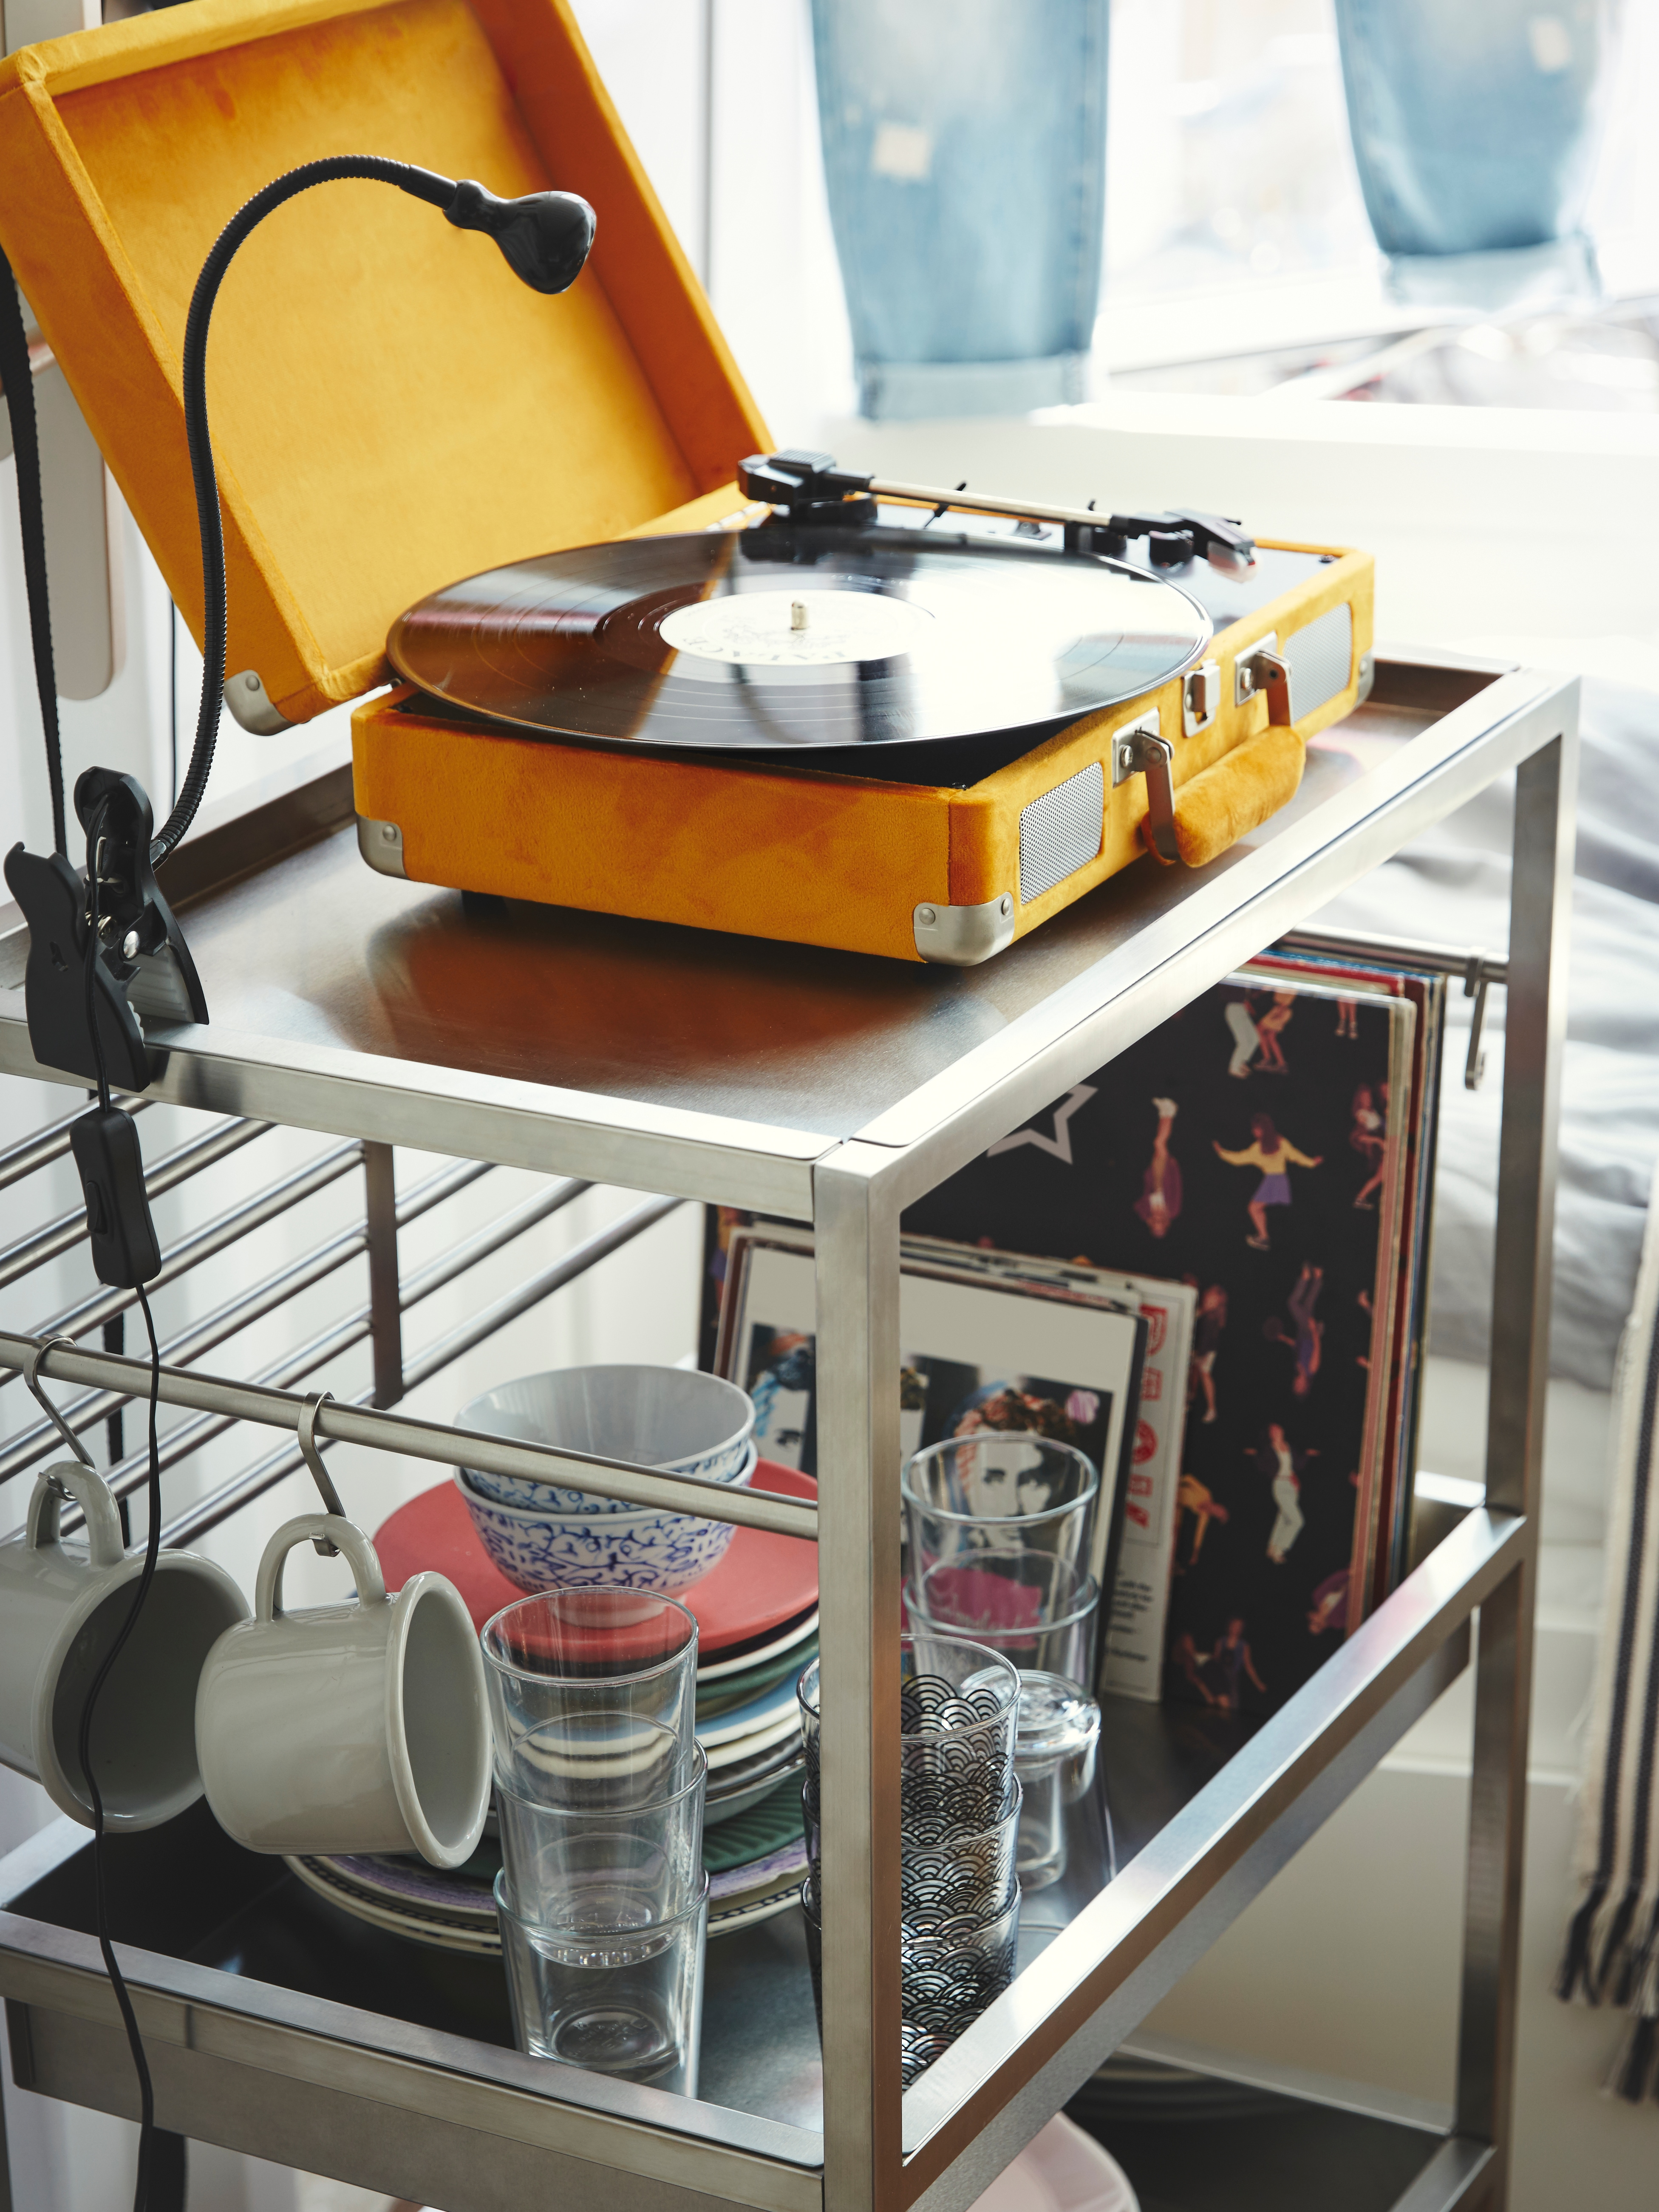 KUNGSFORS trolley with yellow turntable and spot light on top shelf, and records and crockery on the shelf below.